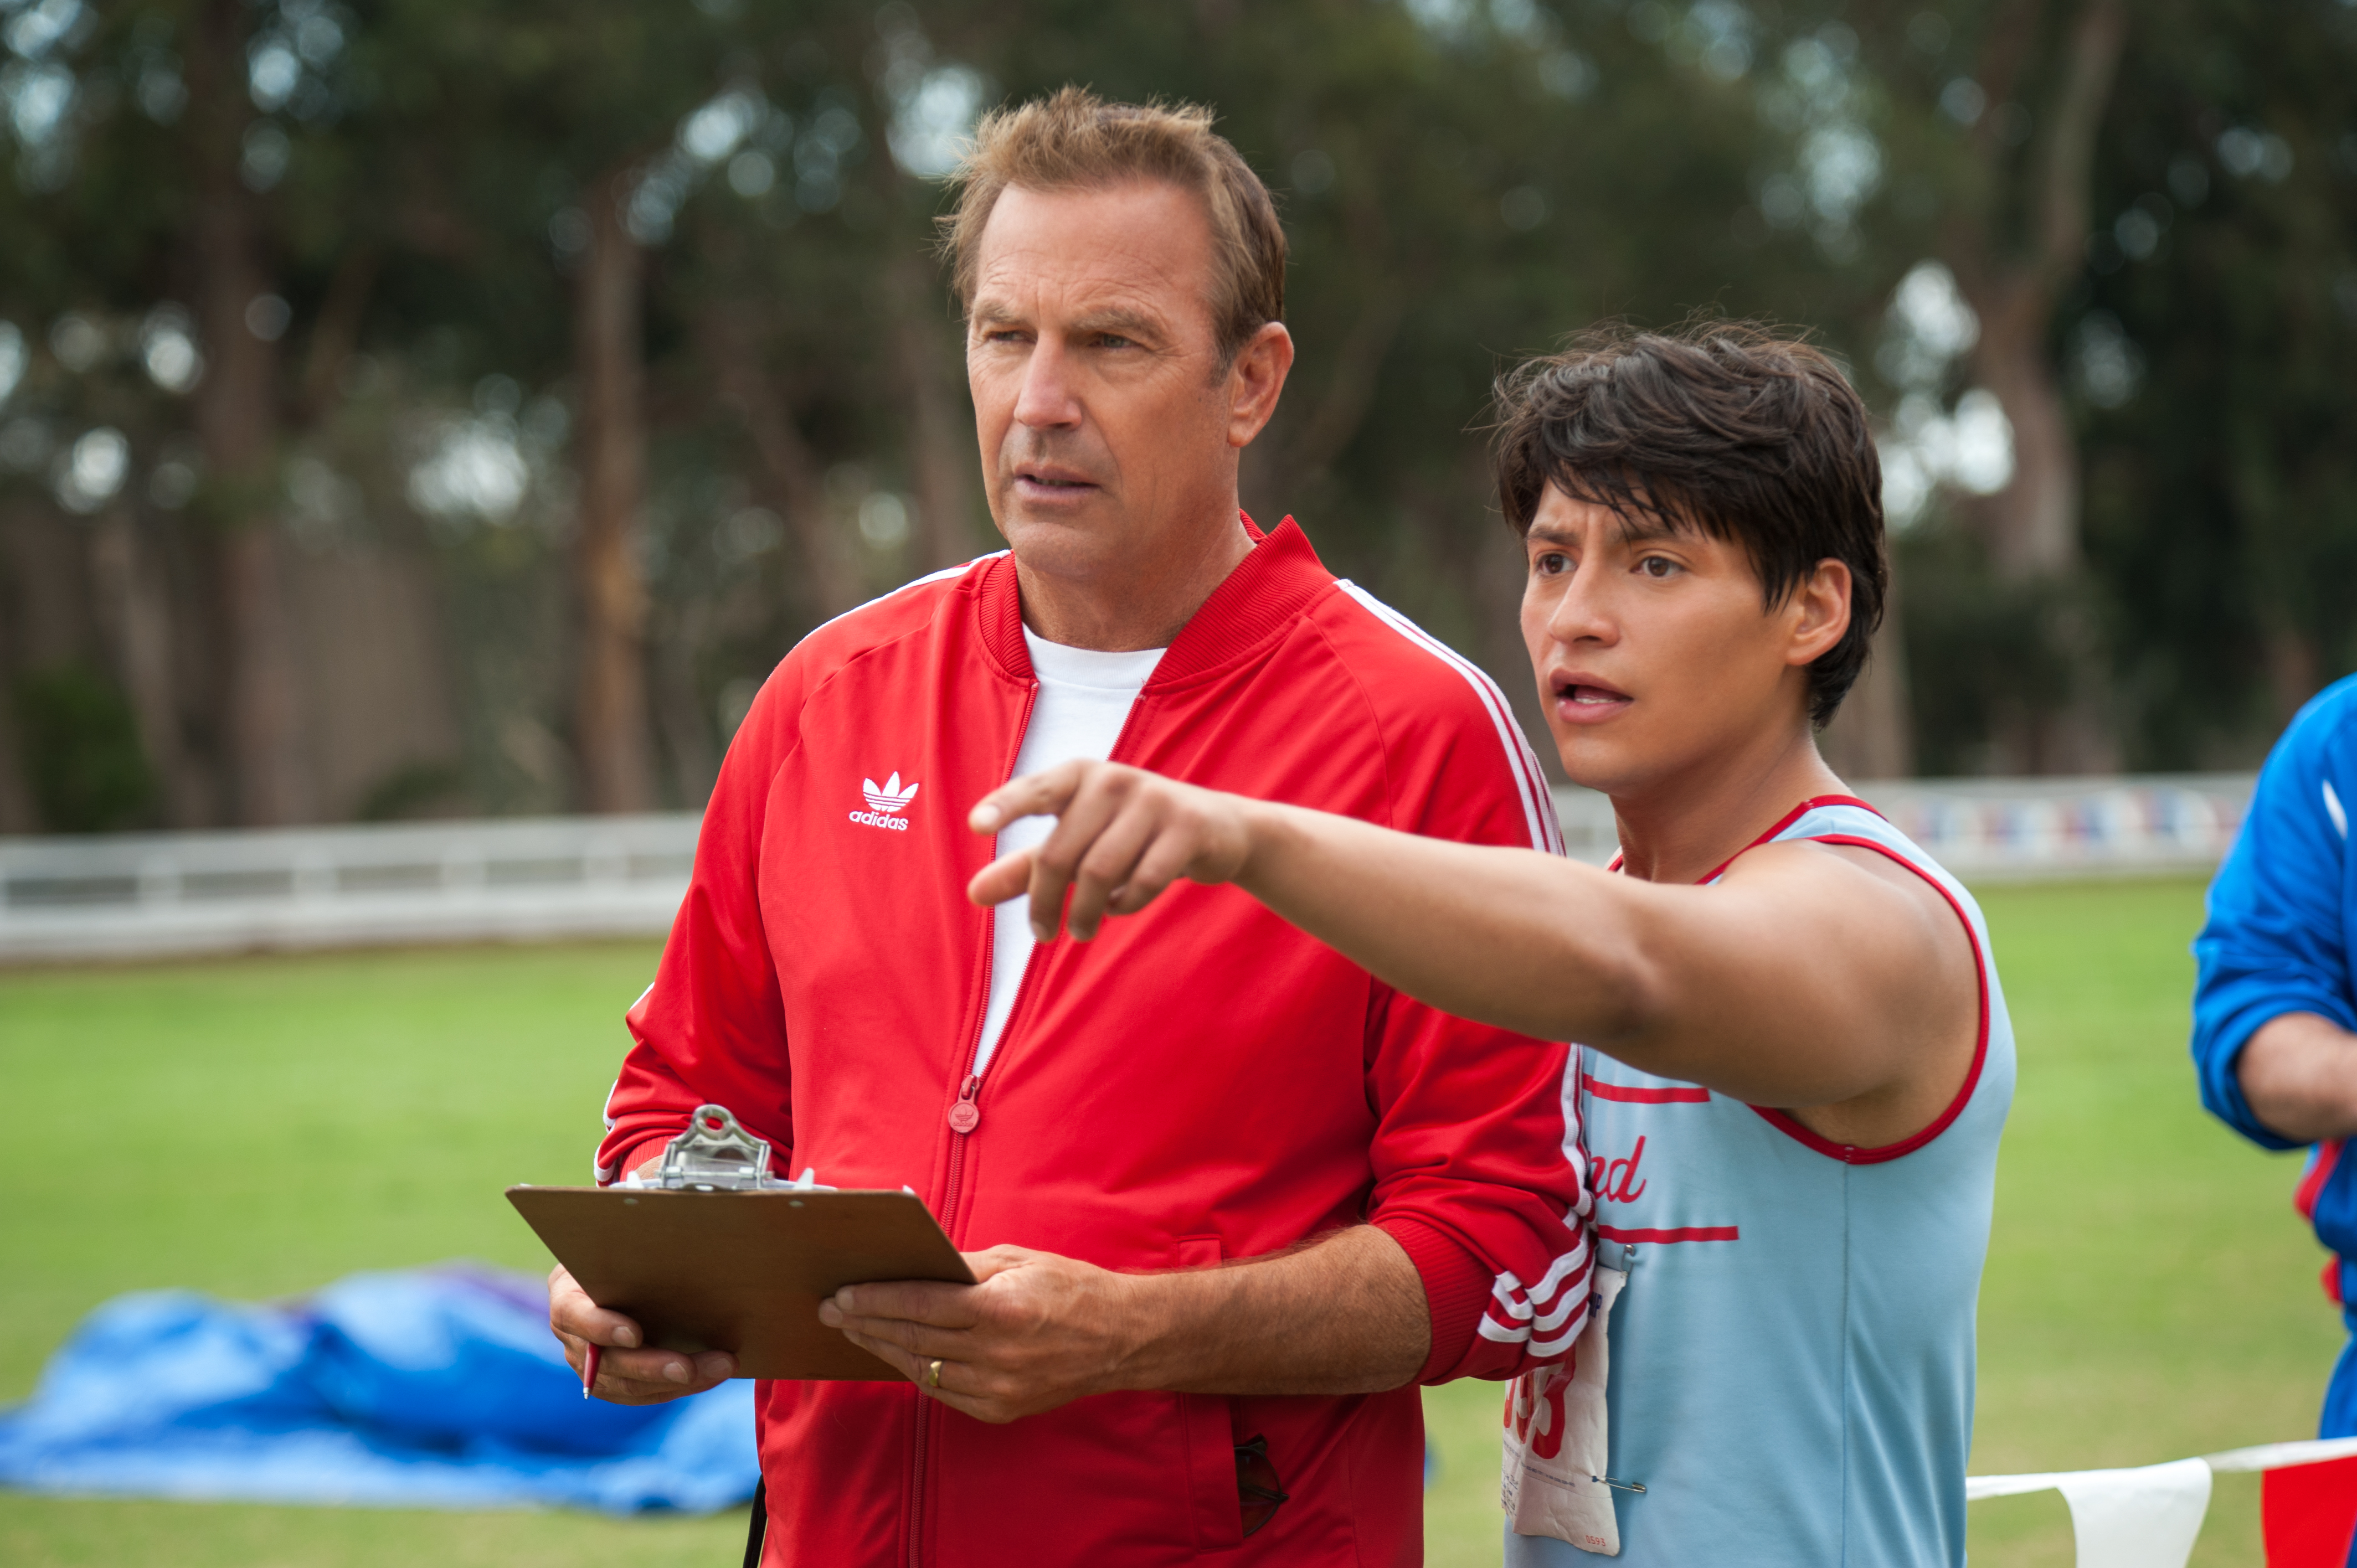 Kevin Costner, foreground left, and Carlos Pratts appear in a scene from McFarland, USA. (Photo: Disney Pictures)